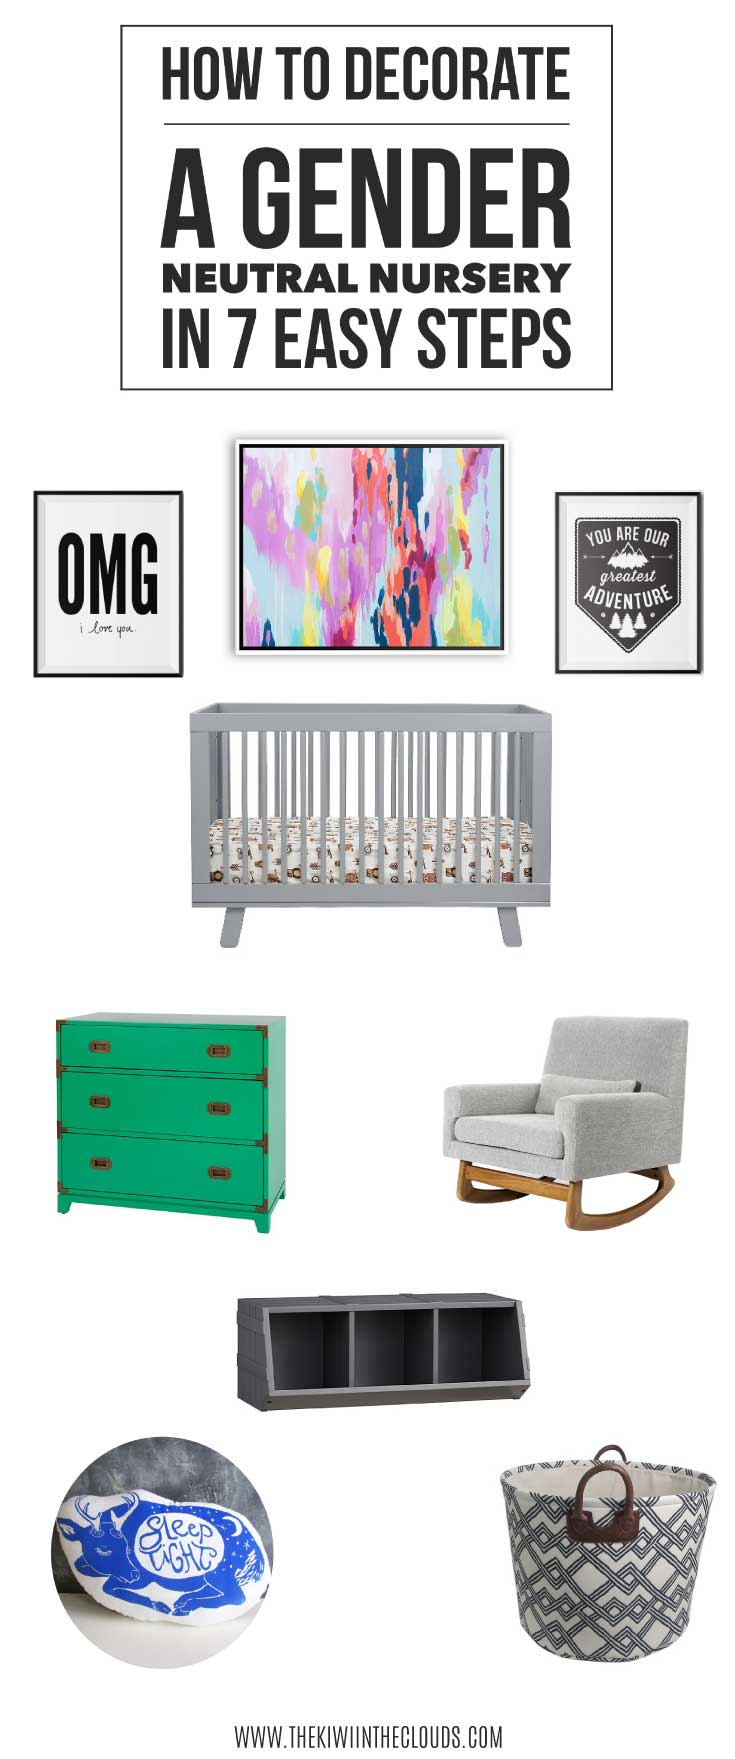 how to decorate gender neutral nursery